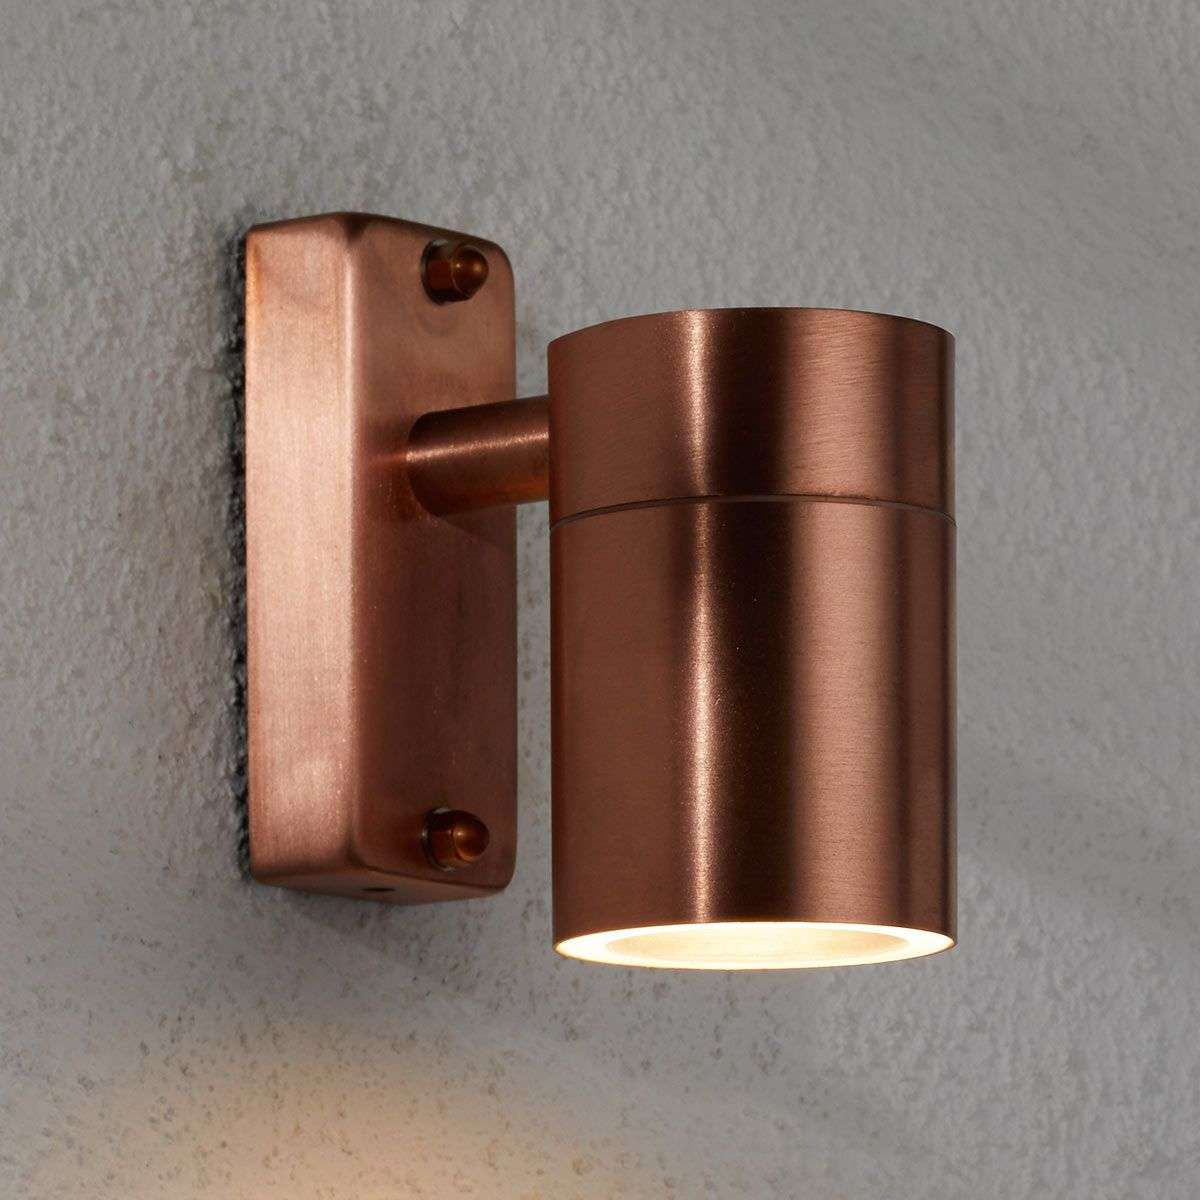 tin lighting. Unique Lighting Modern Copper Outdoor Wall Lamp Tin700511334 Throughout Tin Lighting